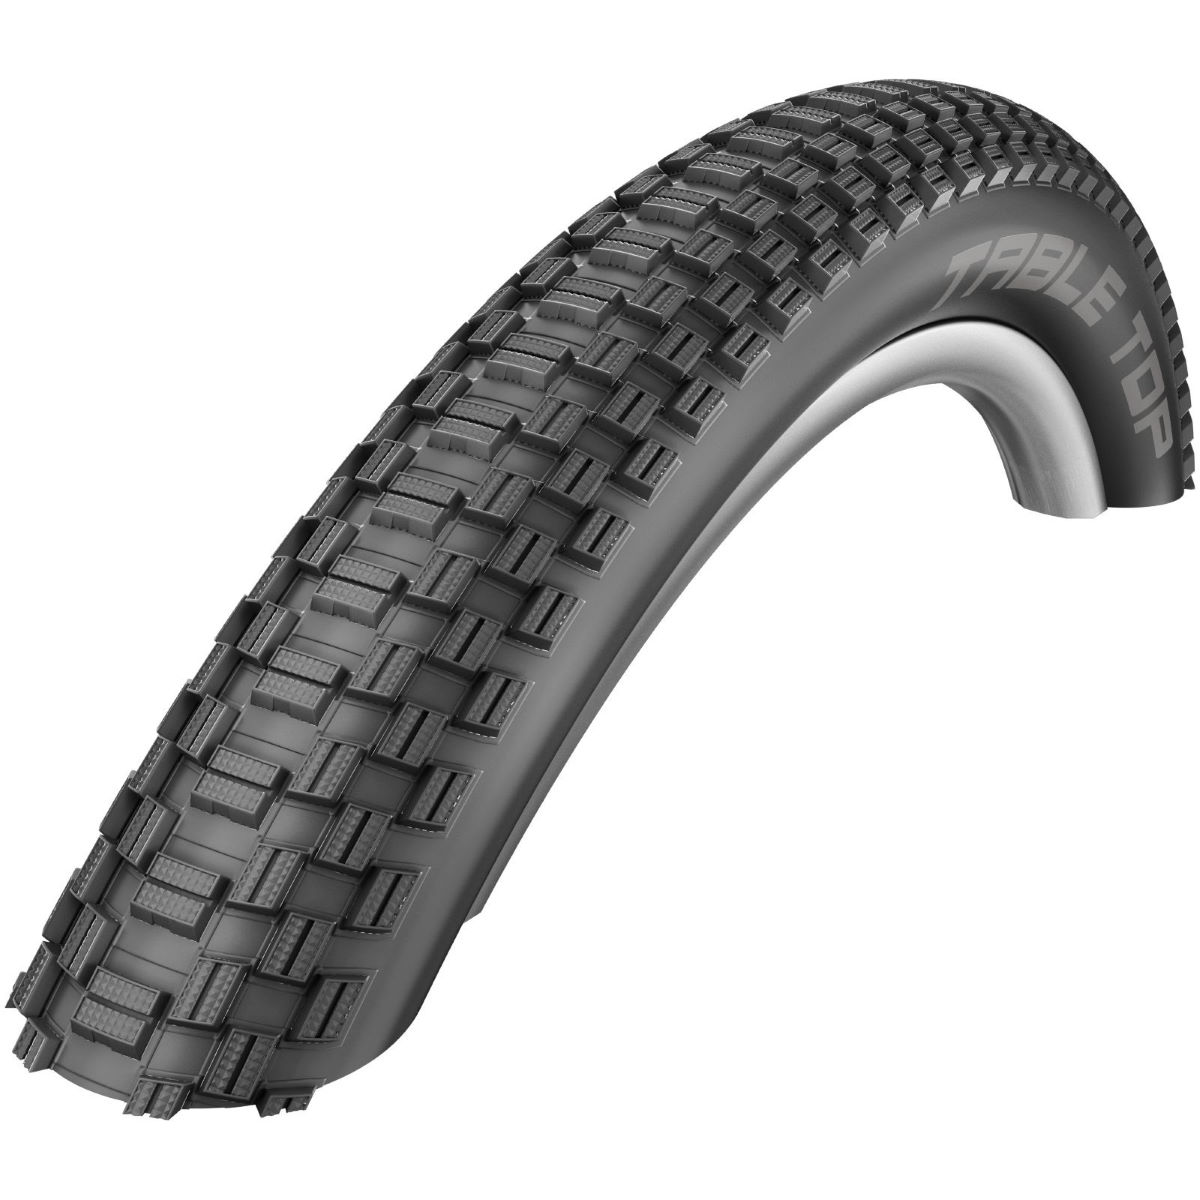 Schwalbe Table Top Performance MTB Tyre   Tyres